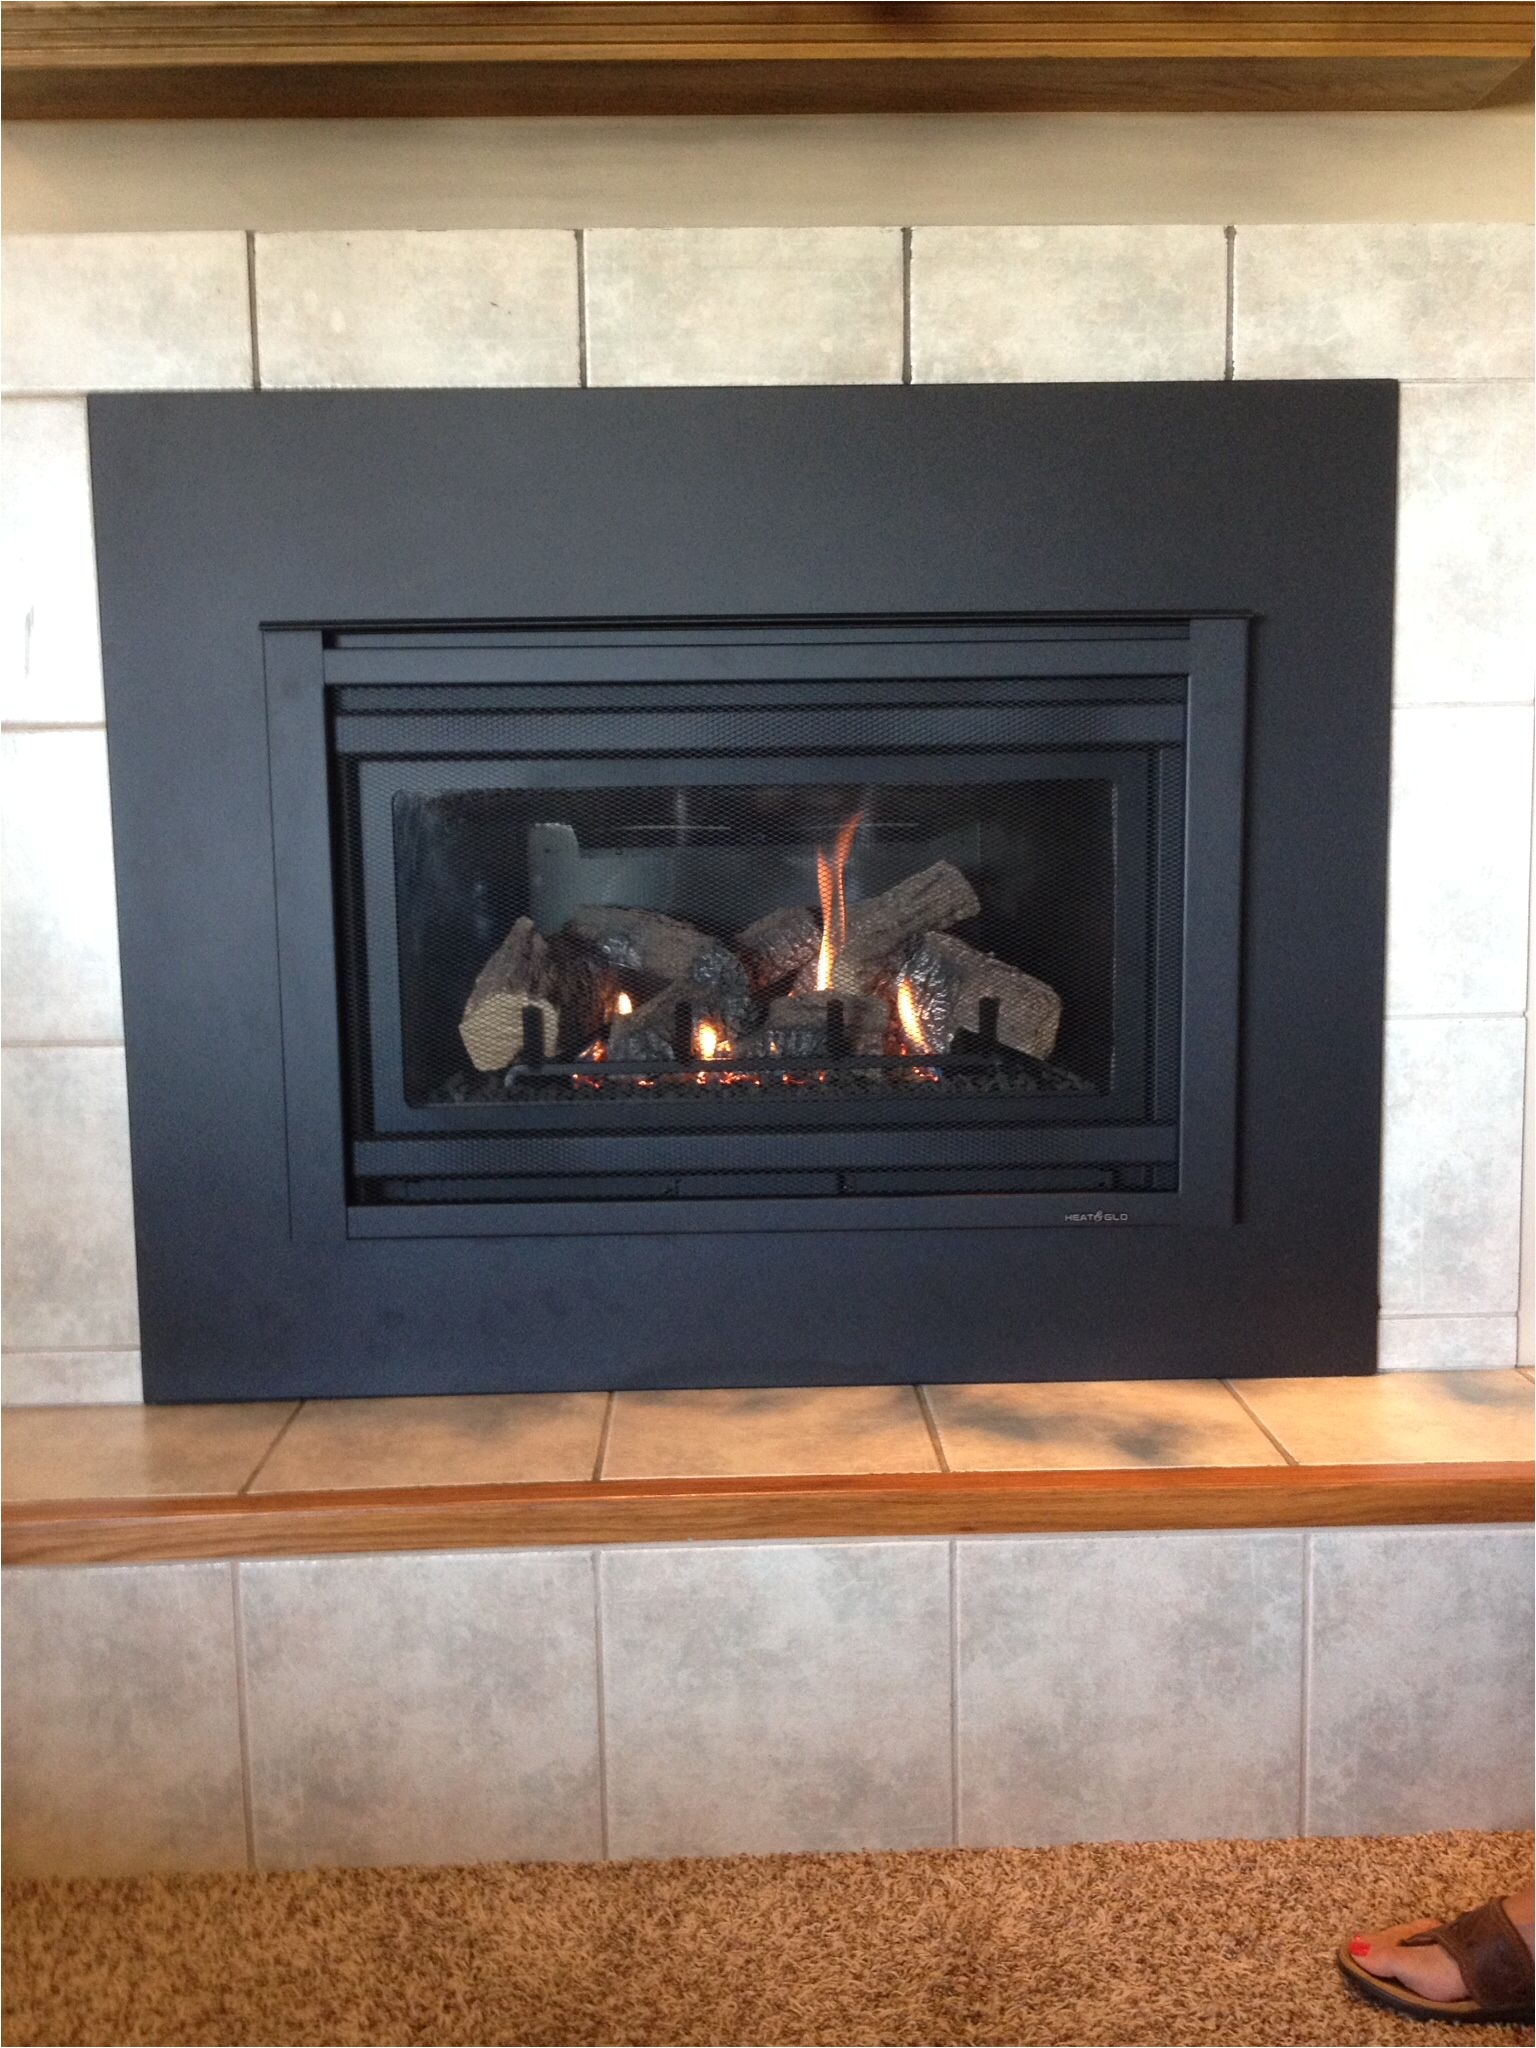 Find Gas Fireplace Inserts Denver Heat N Glo Supreme I 30 Gas Insert with Custom Surround Panel